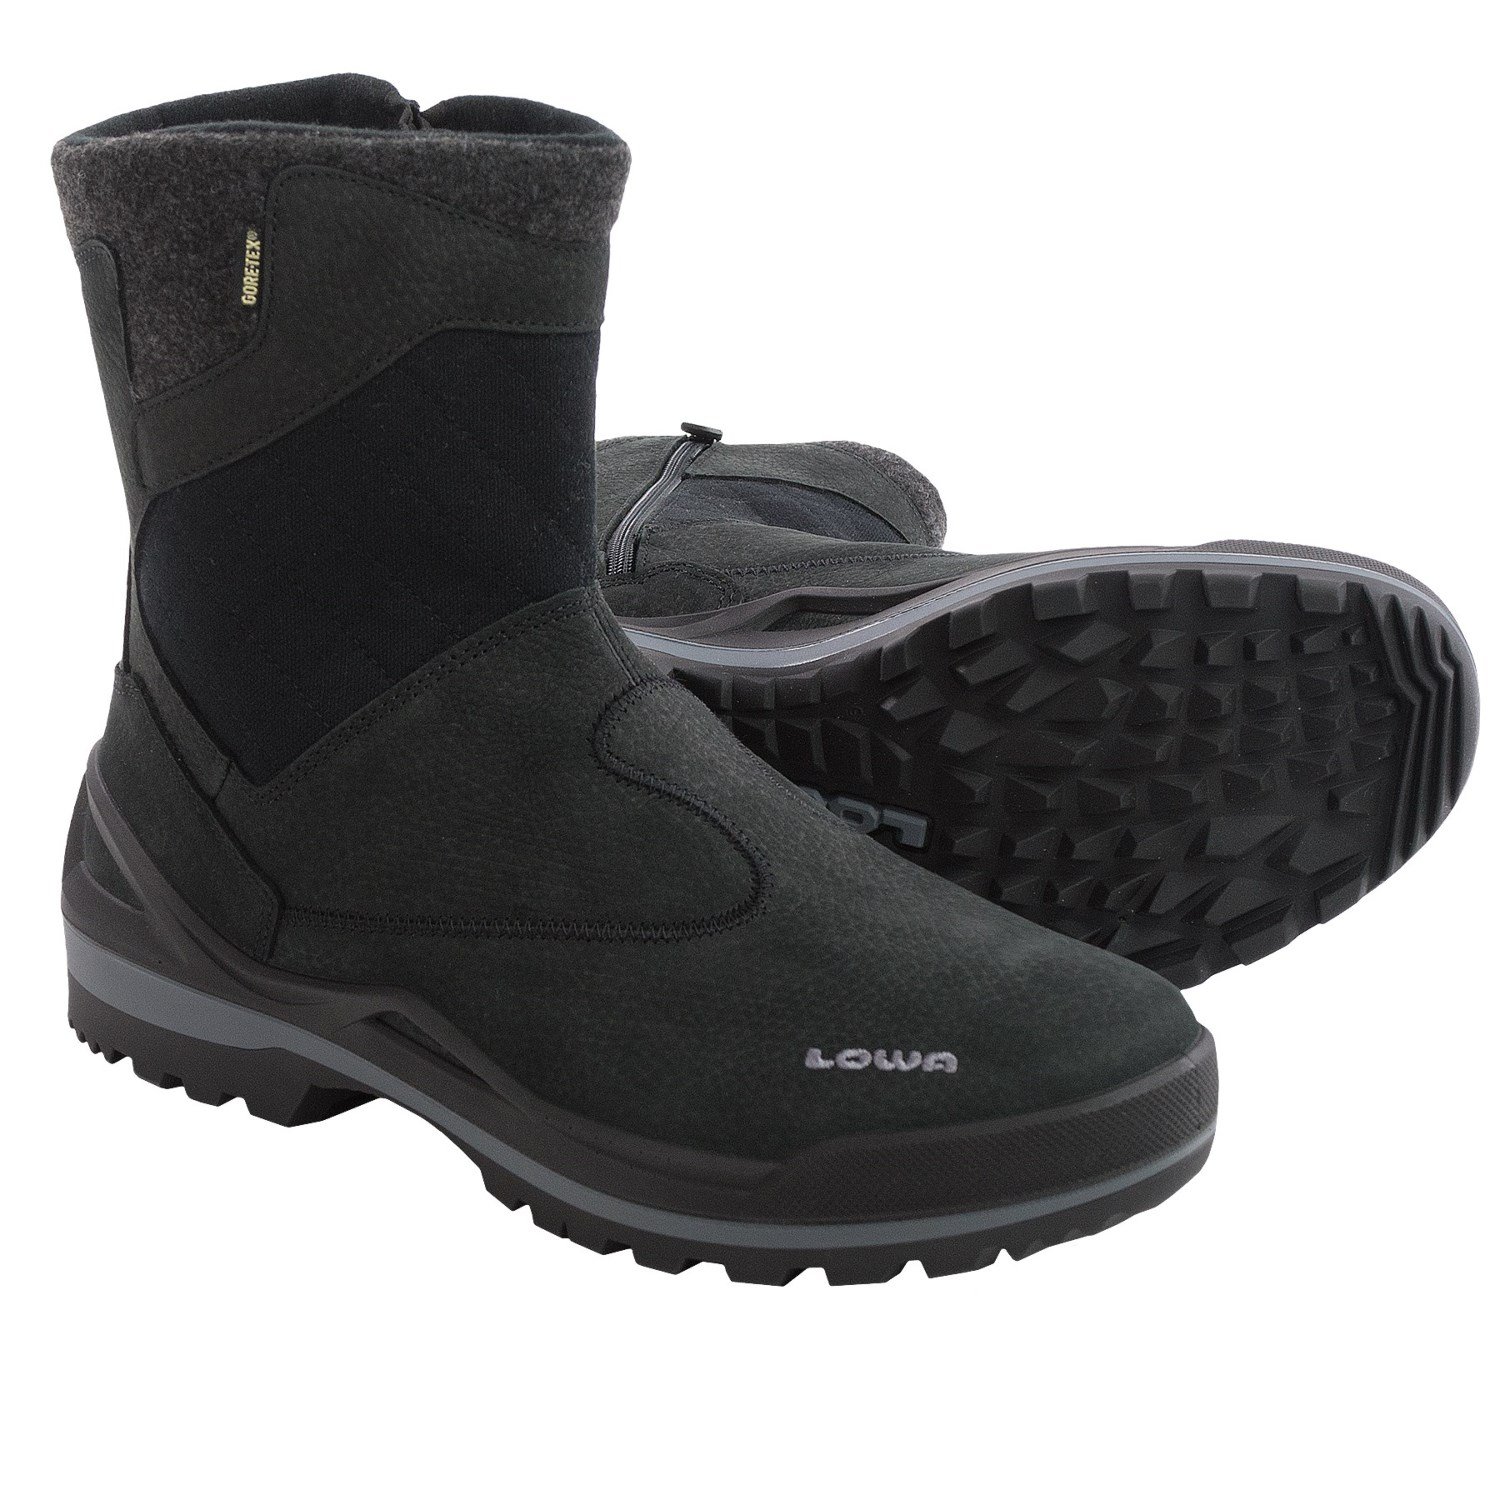 Clearance & Rollbacks. Shop all Clearance & Rollbacks Food Household Essentials Pets. Pharmacy, Health & Beauty. Caregiver Support Immunity Support Shop Restock Shop. Product - Mens Insulated Winter Snow Boots - Lace-up Closure Comfortable Weatherproof Warm. Product Image. Price $